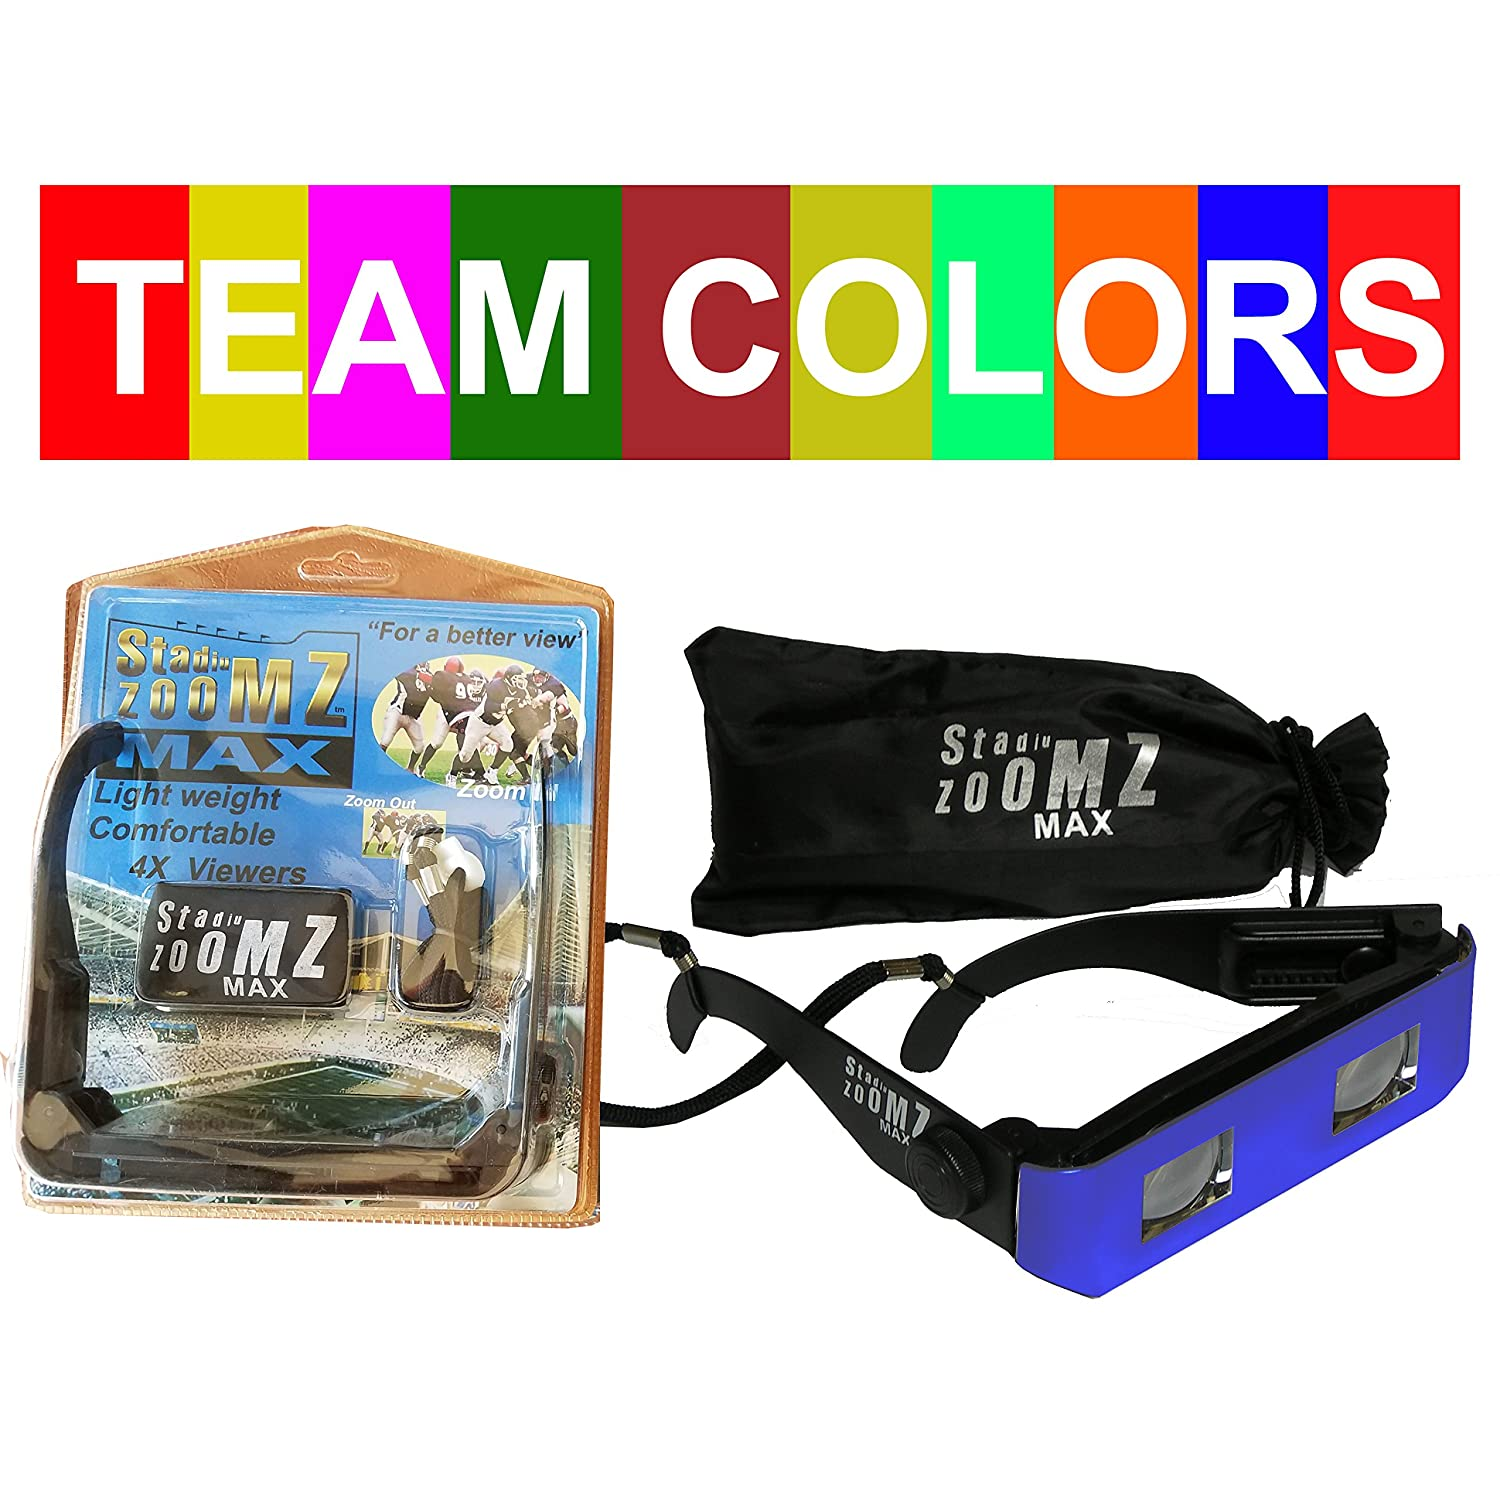 StadiumZoomz Max Team Colors Binocular Glasses Blue. Telescope Lenses Zoom in for Sports Concerts Boating etc